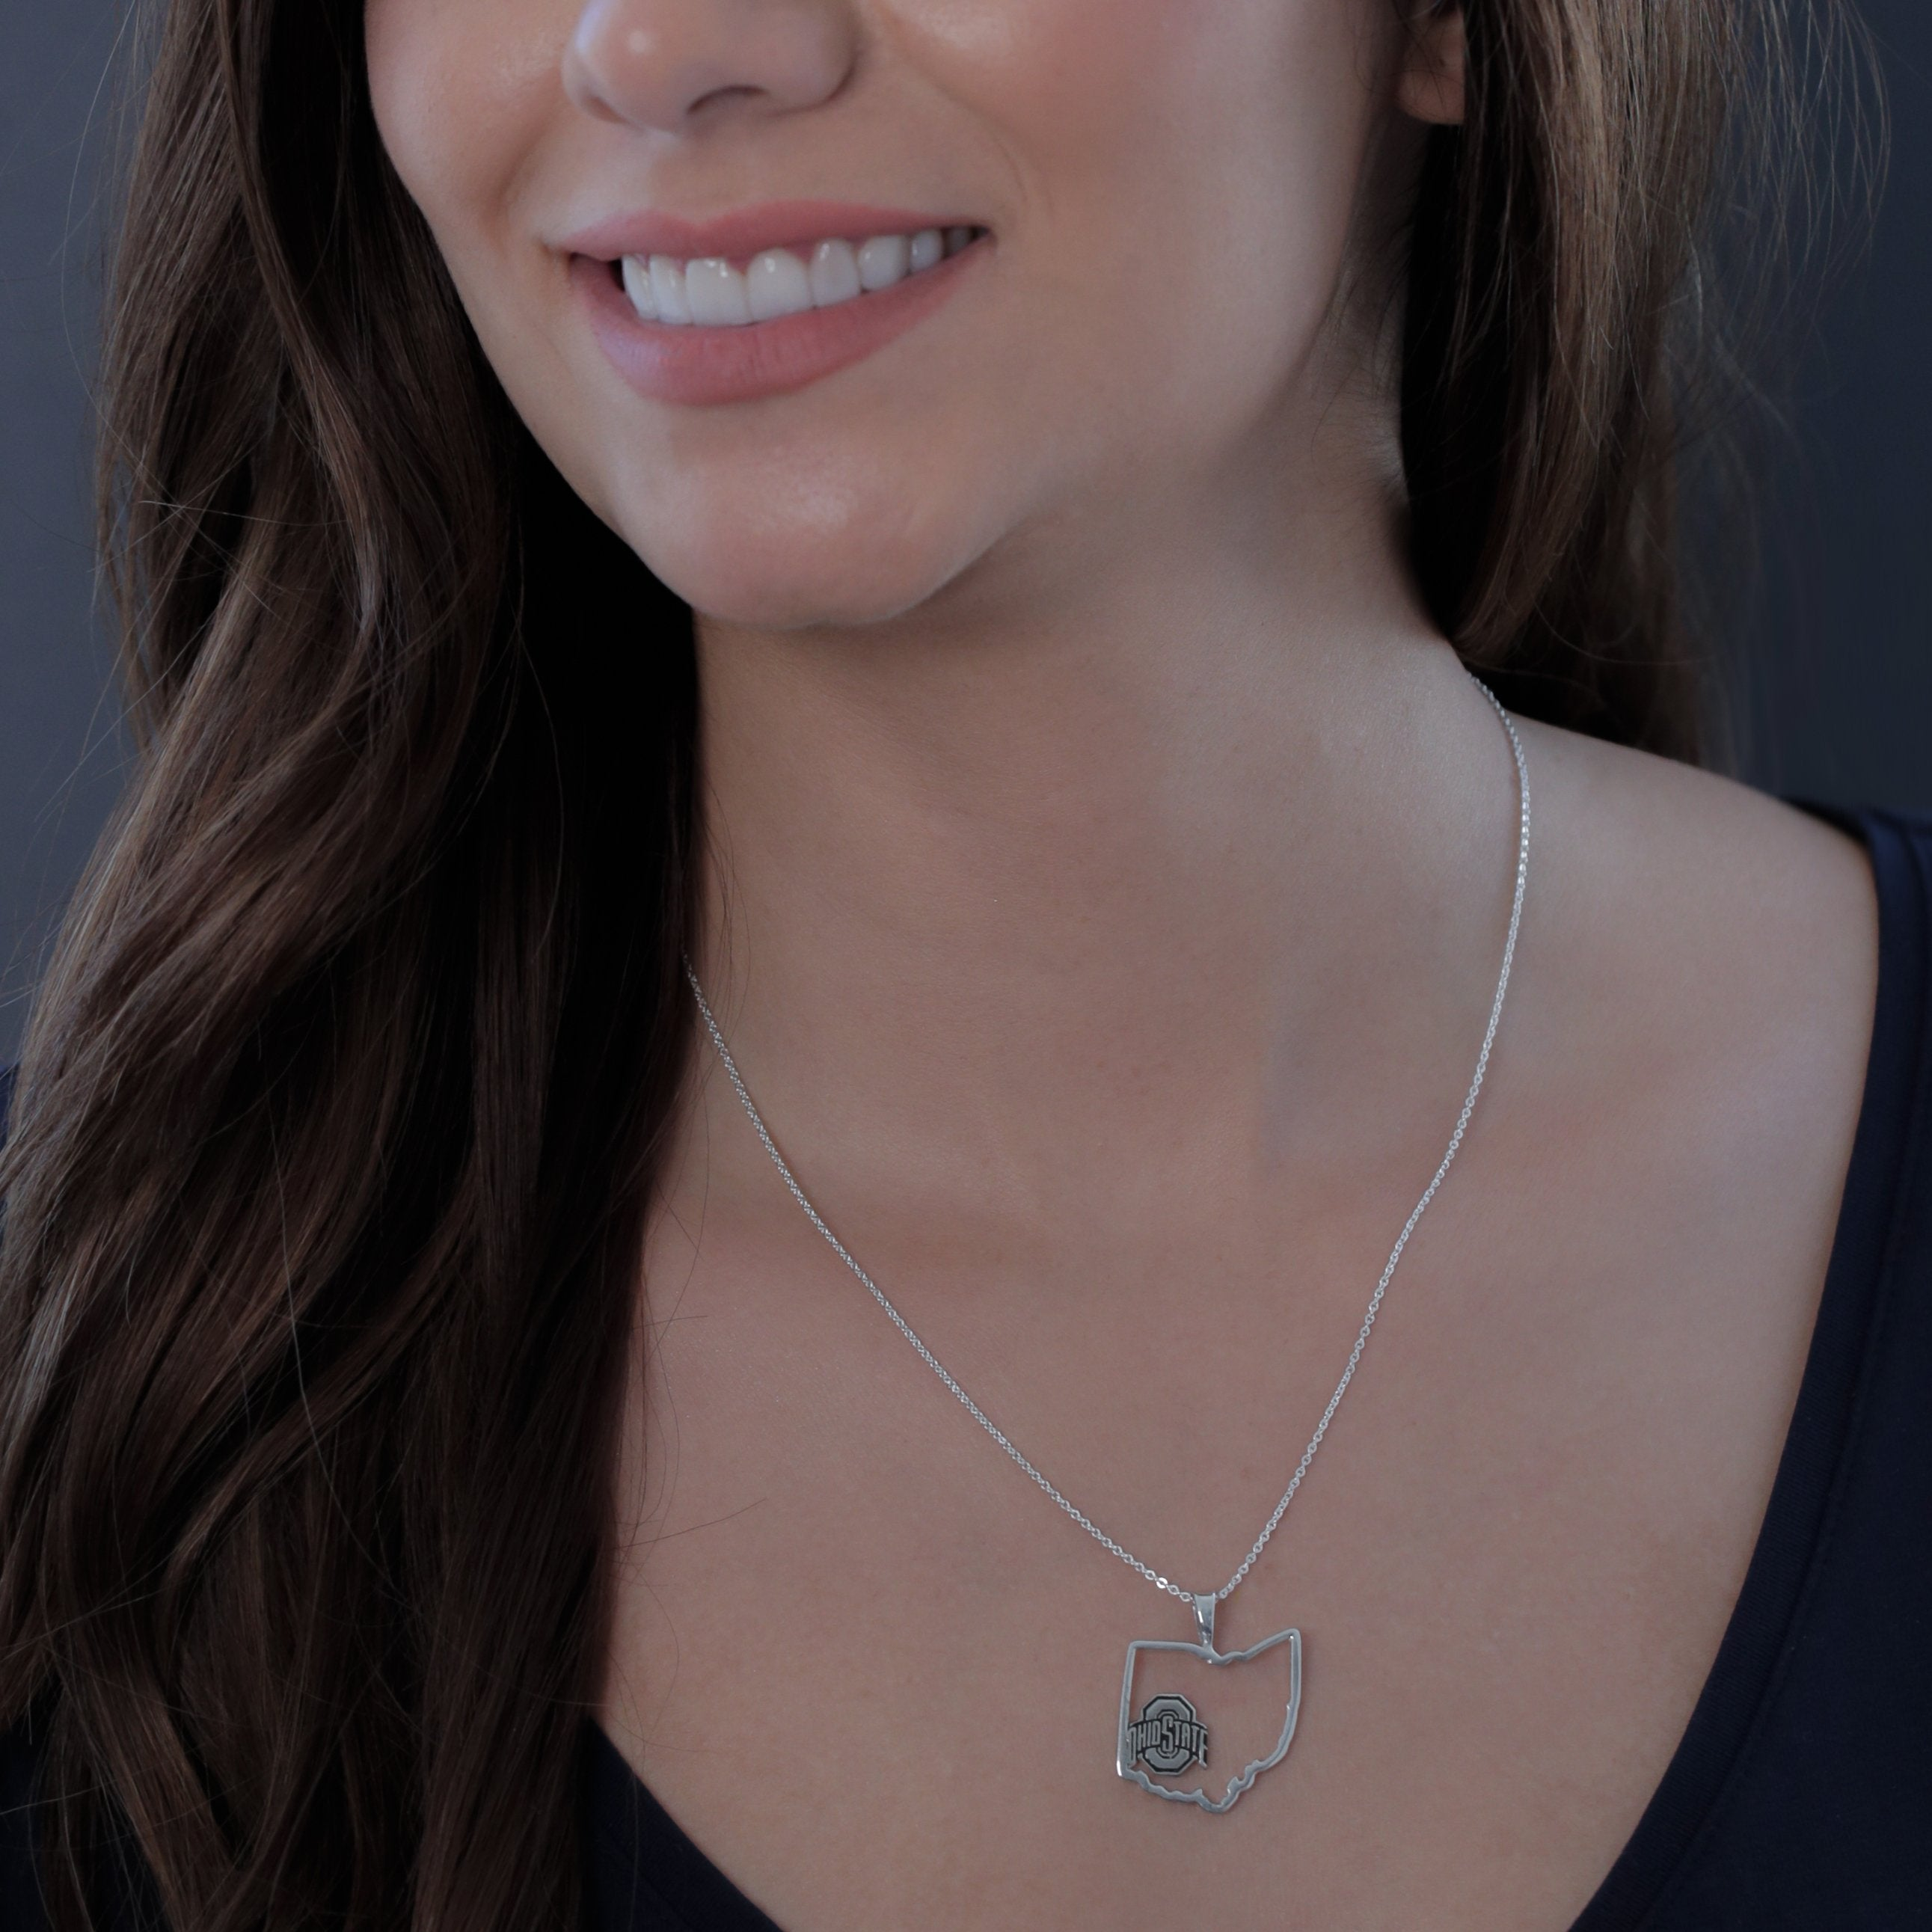 Ohio State University State Outline Necklace